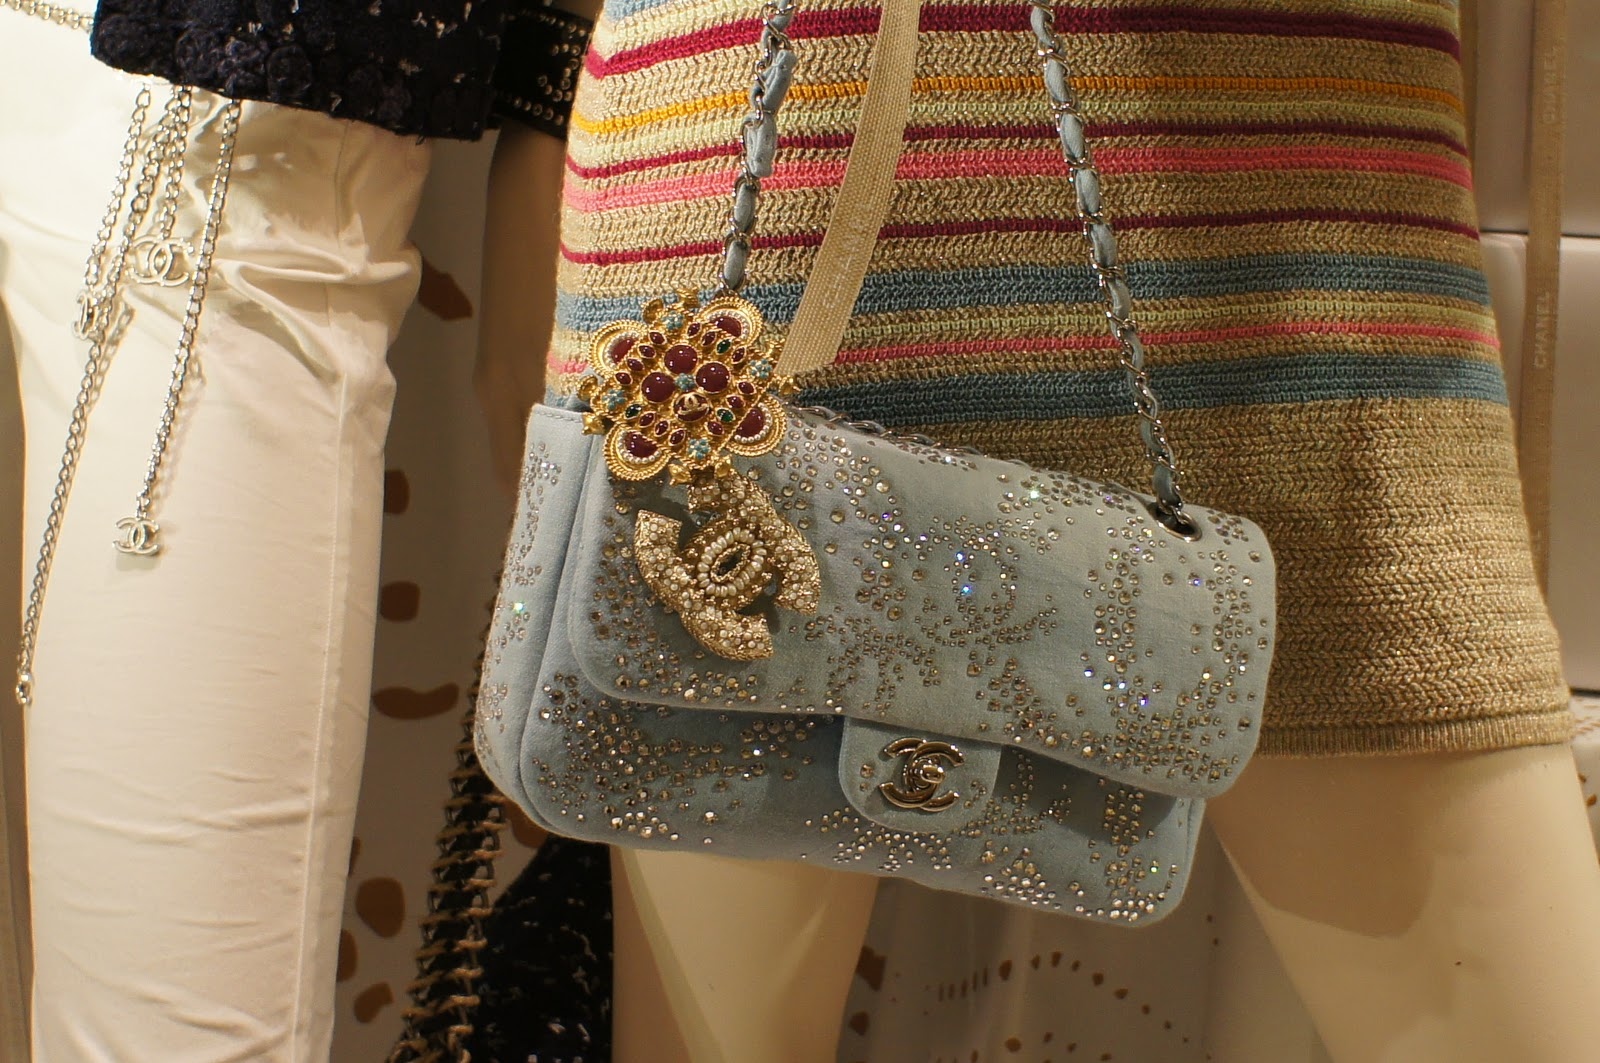 A Blinged Out Classic Flap Bag